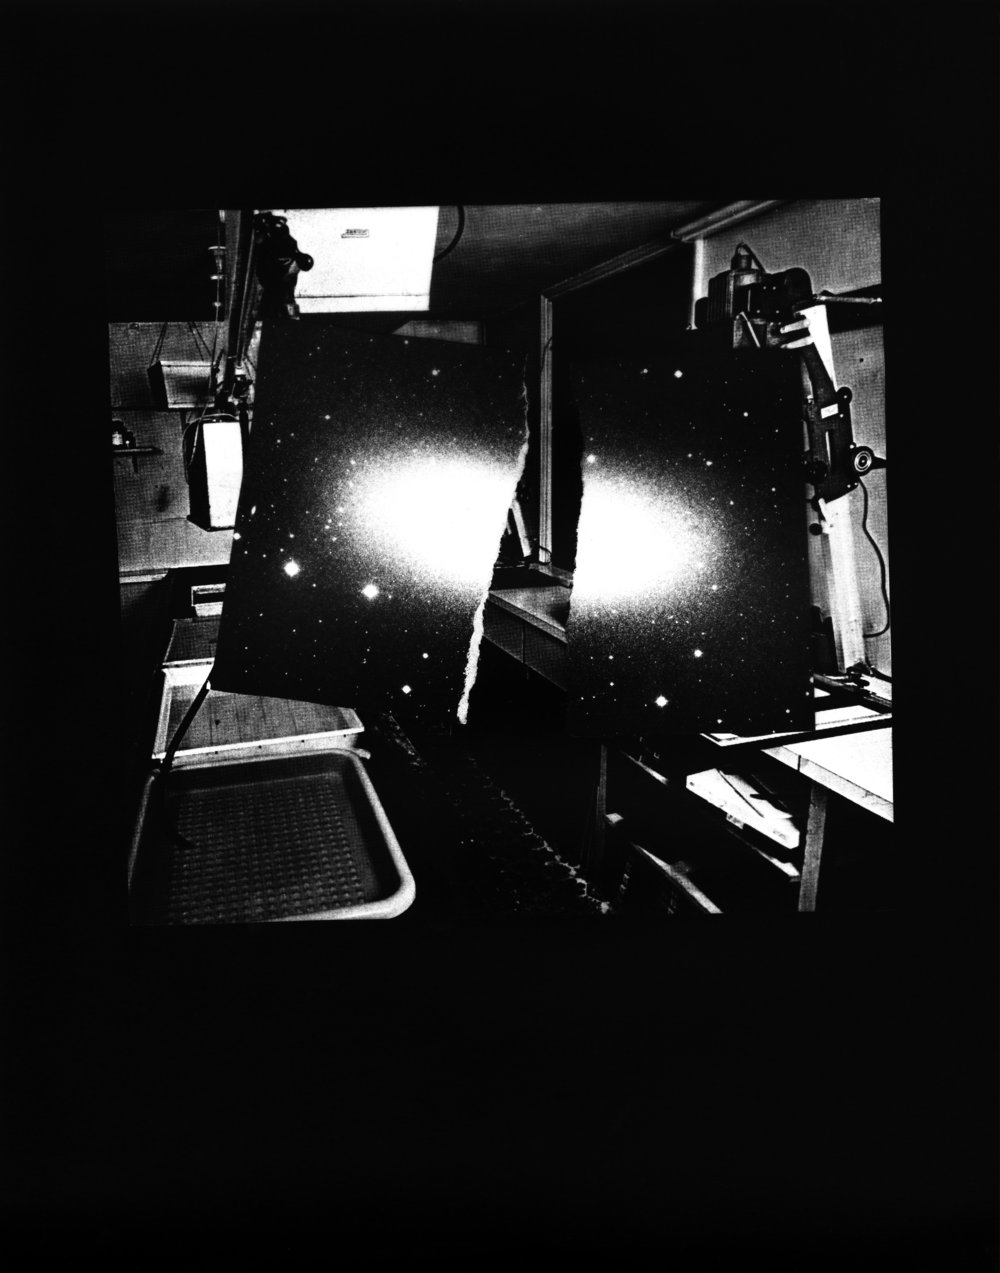 rearrangements_growleryphotograms_0006.jpg